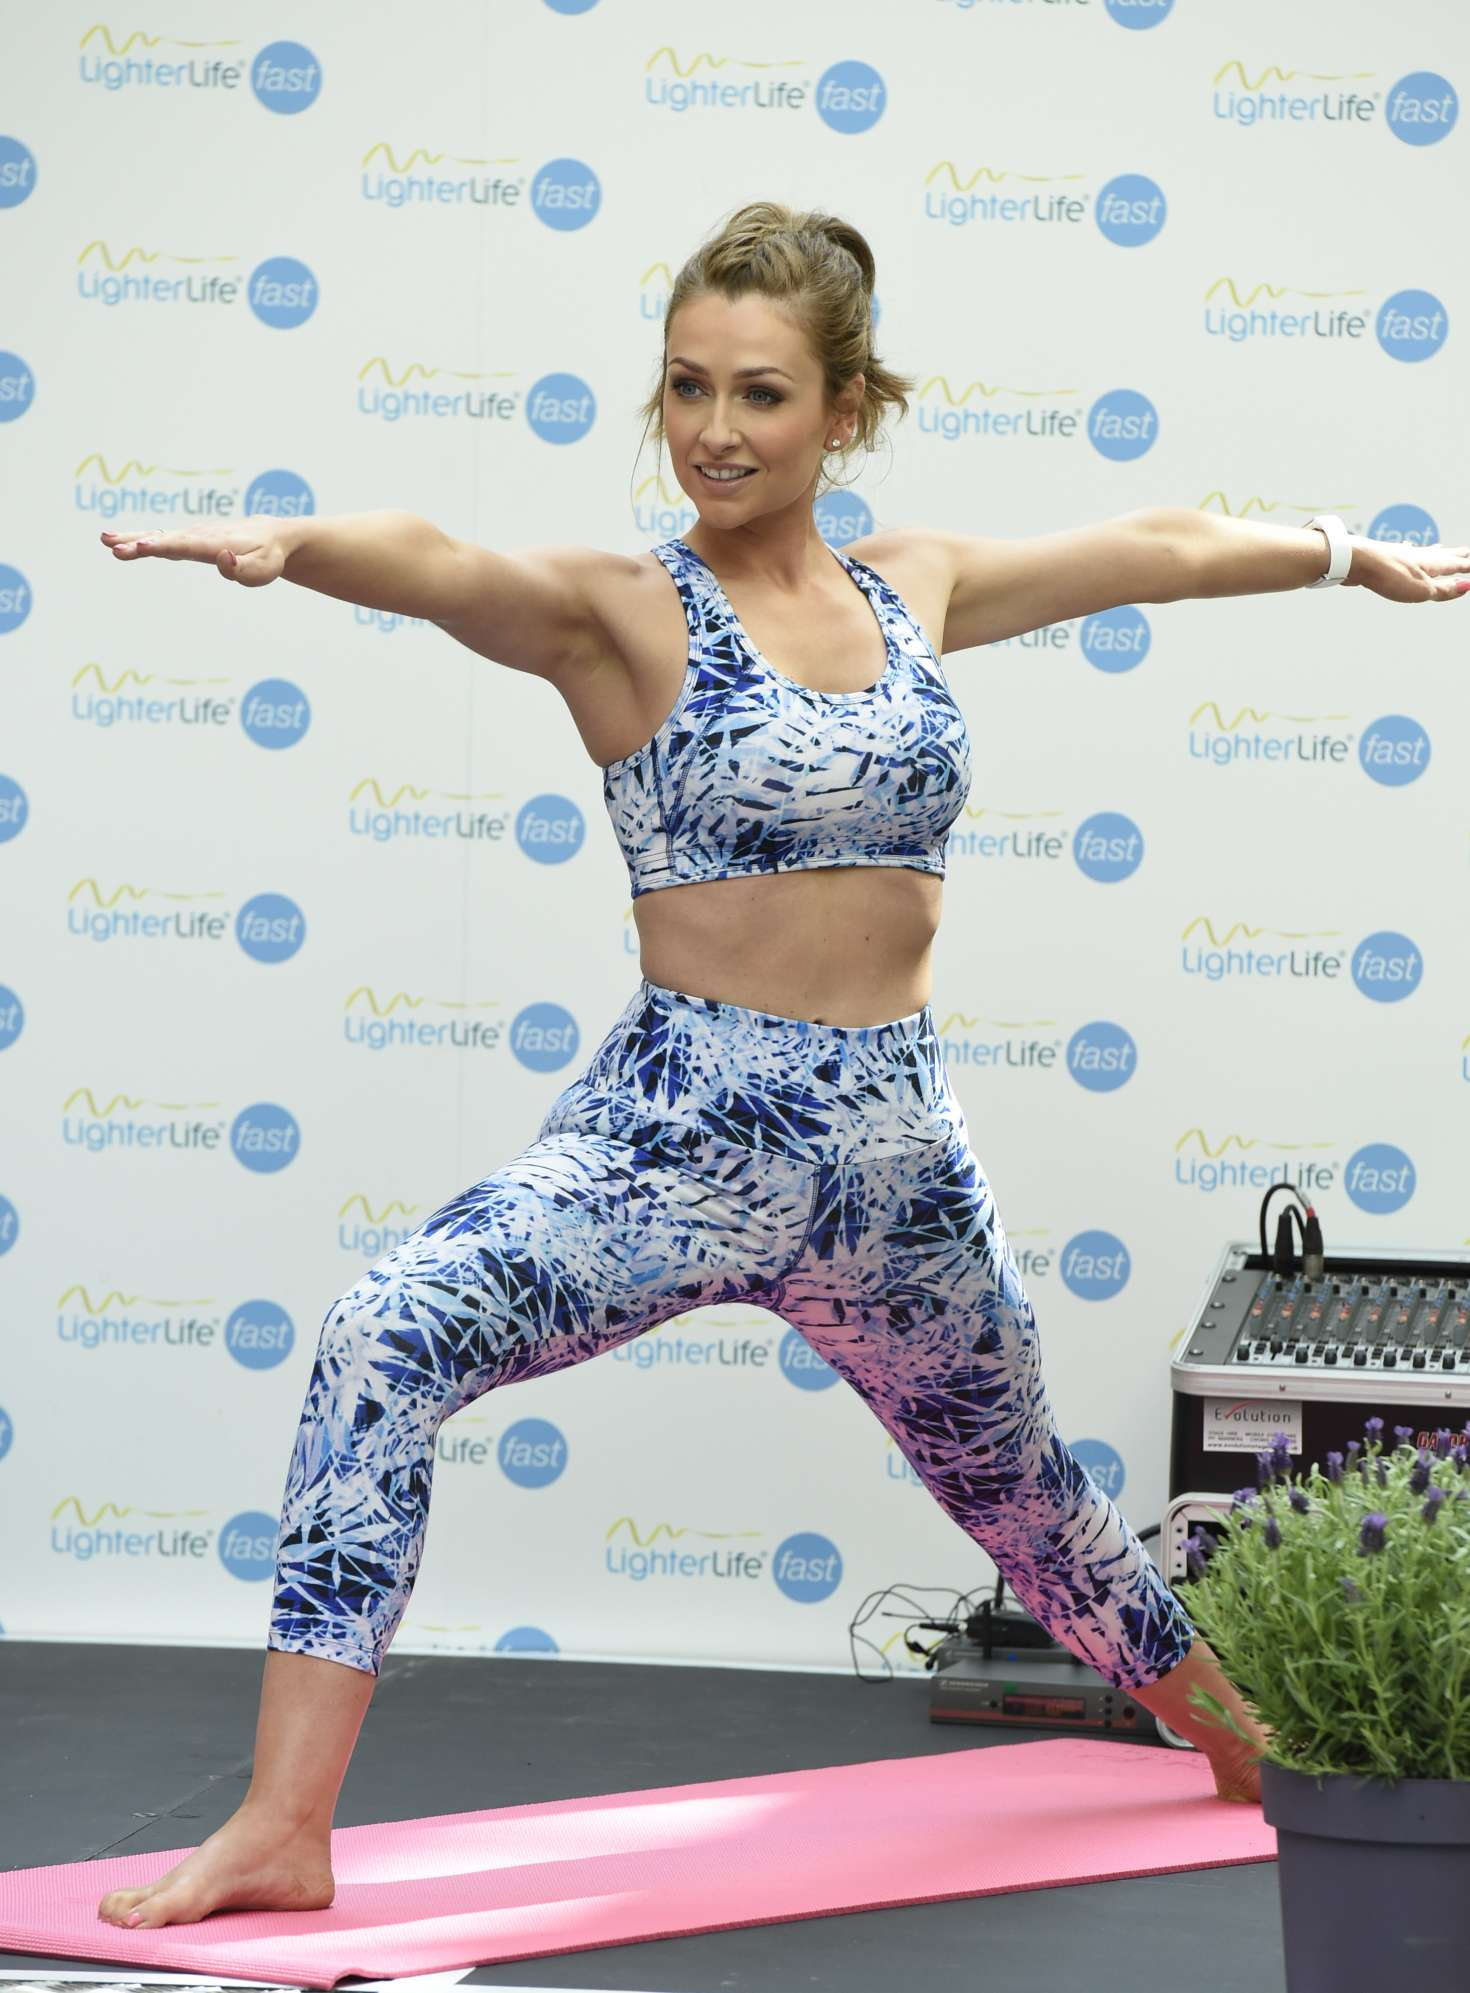 Gemma merna and jennifer metcalfe yoga at the trafford